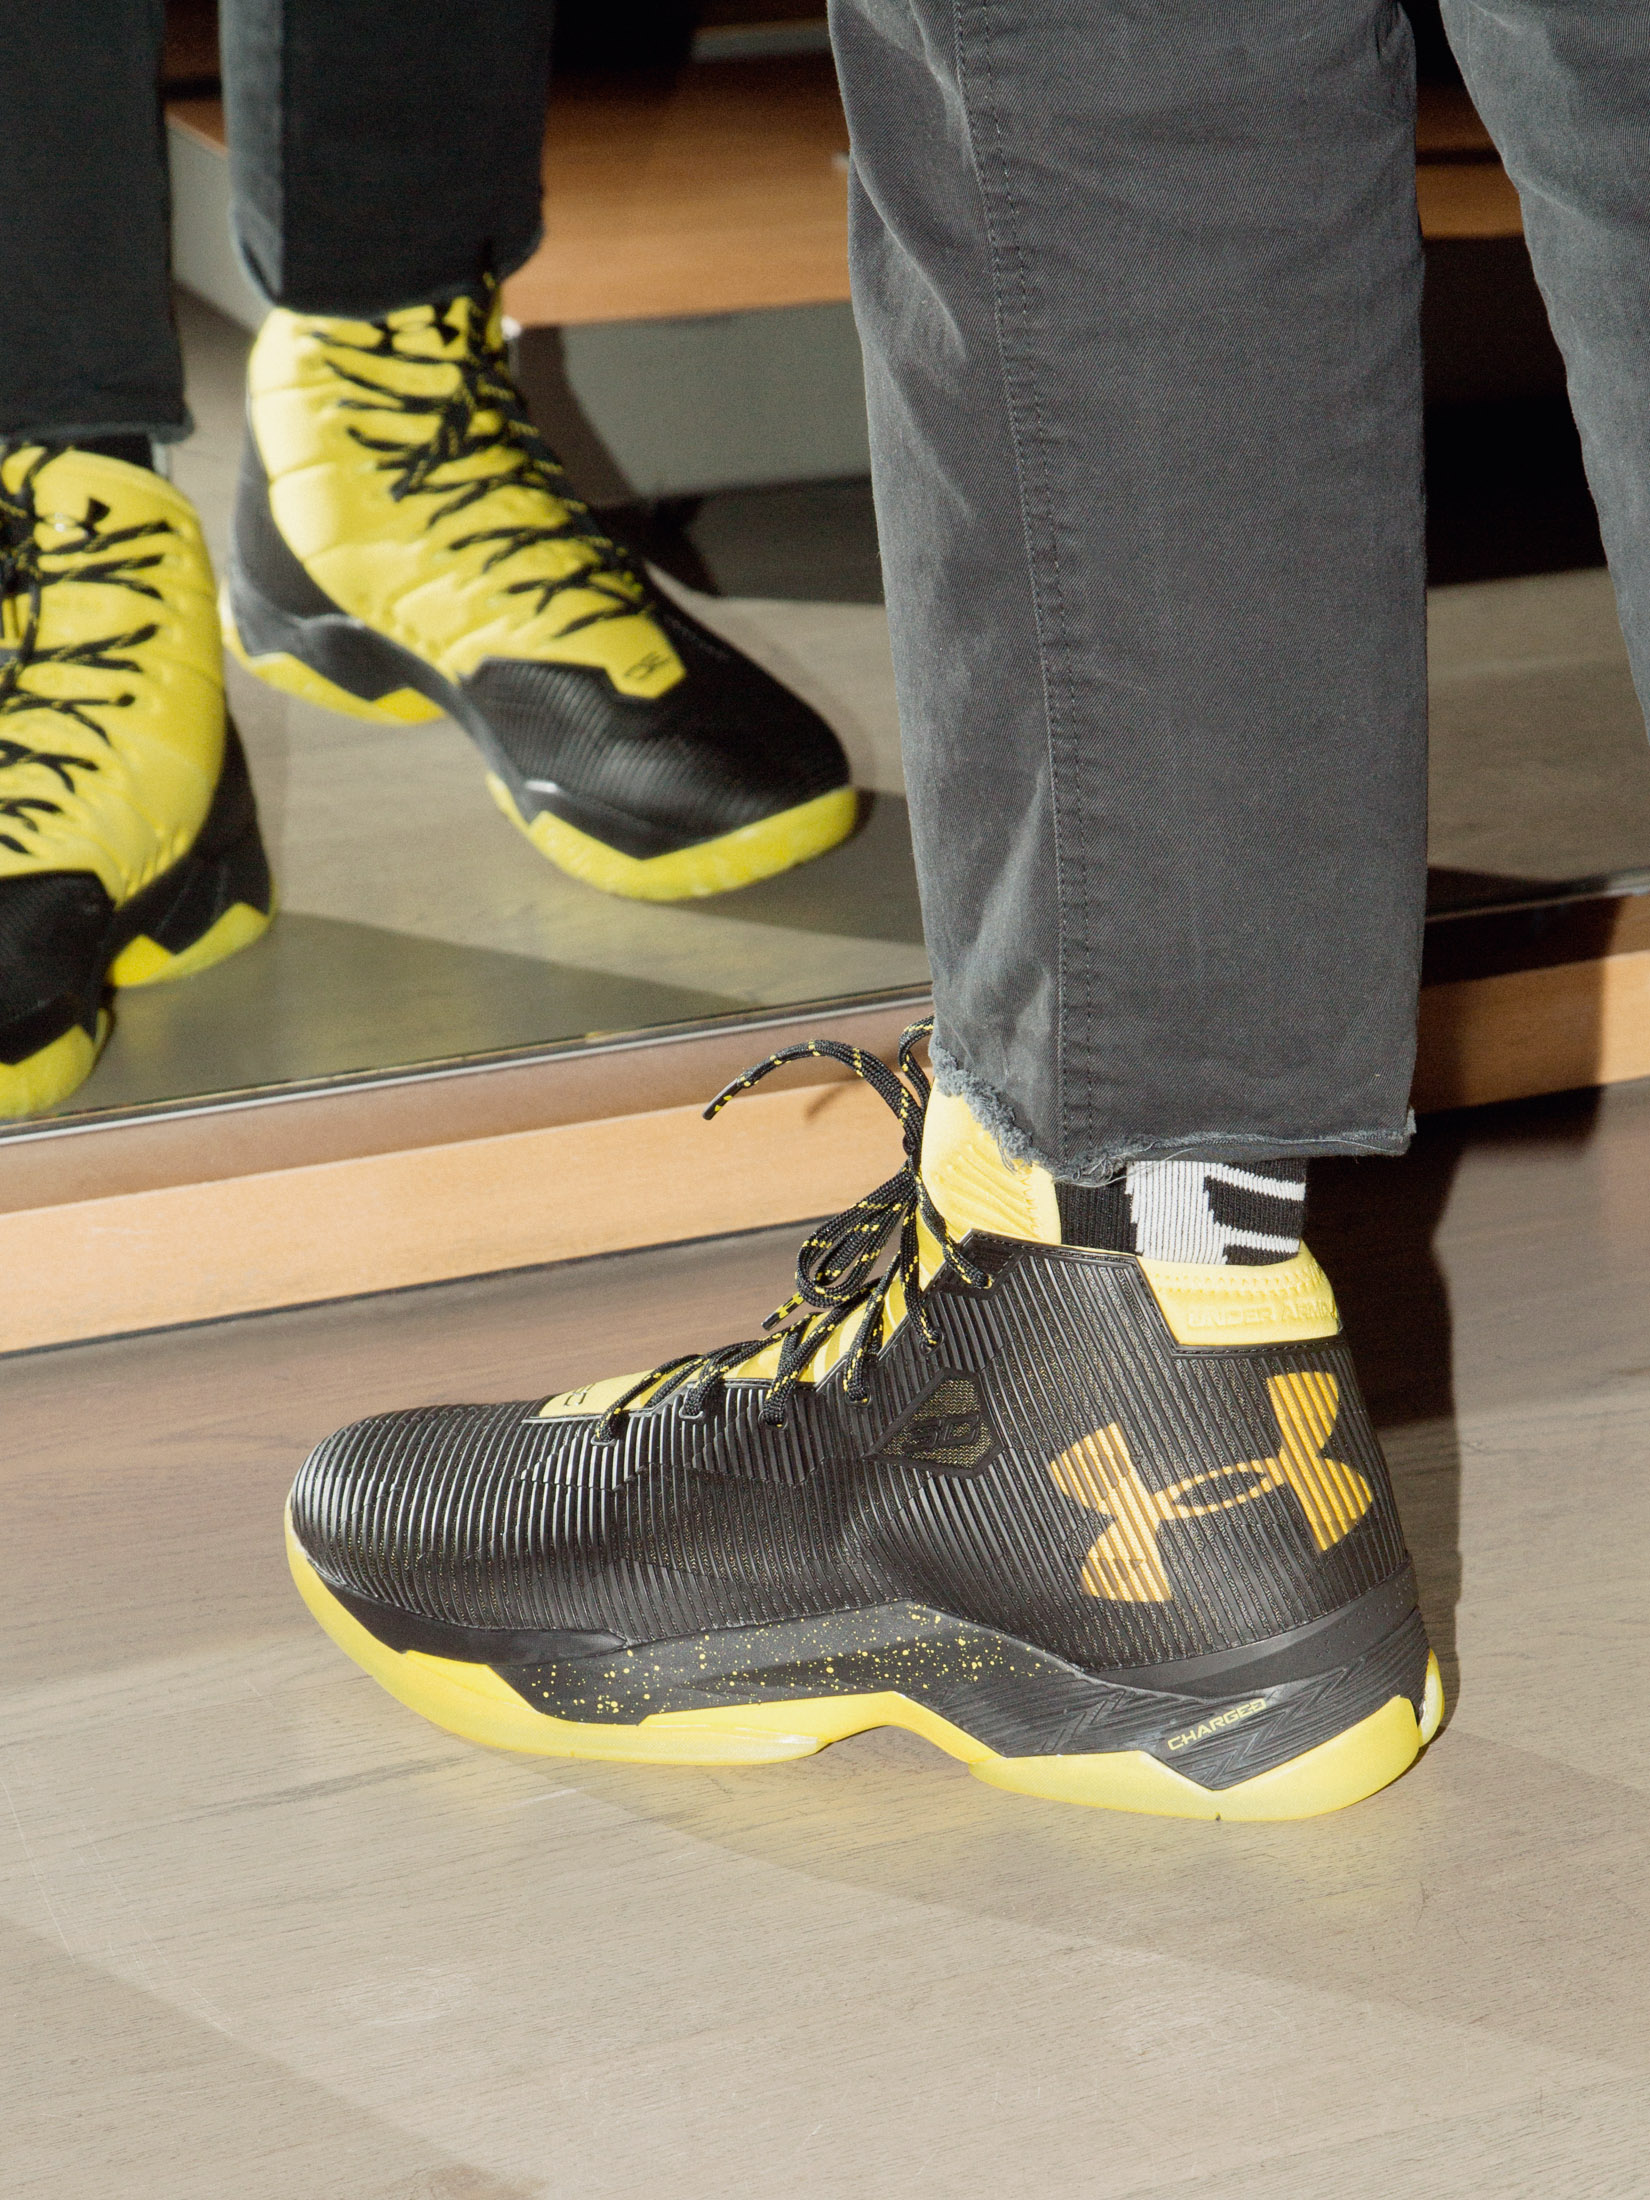 76b91ef96d6aa3 Is It the Shoes  Steph Curry Hasn t Made Under Armour Cool Yet